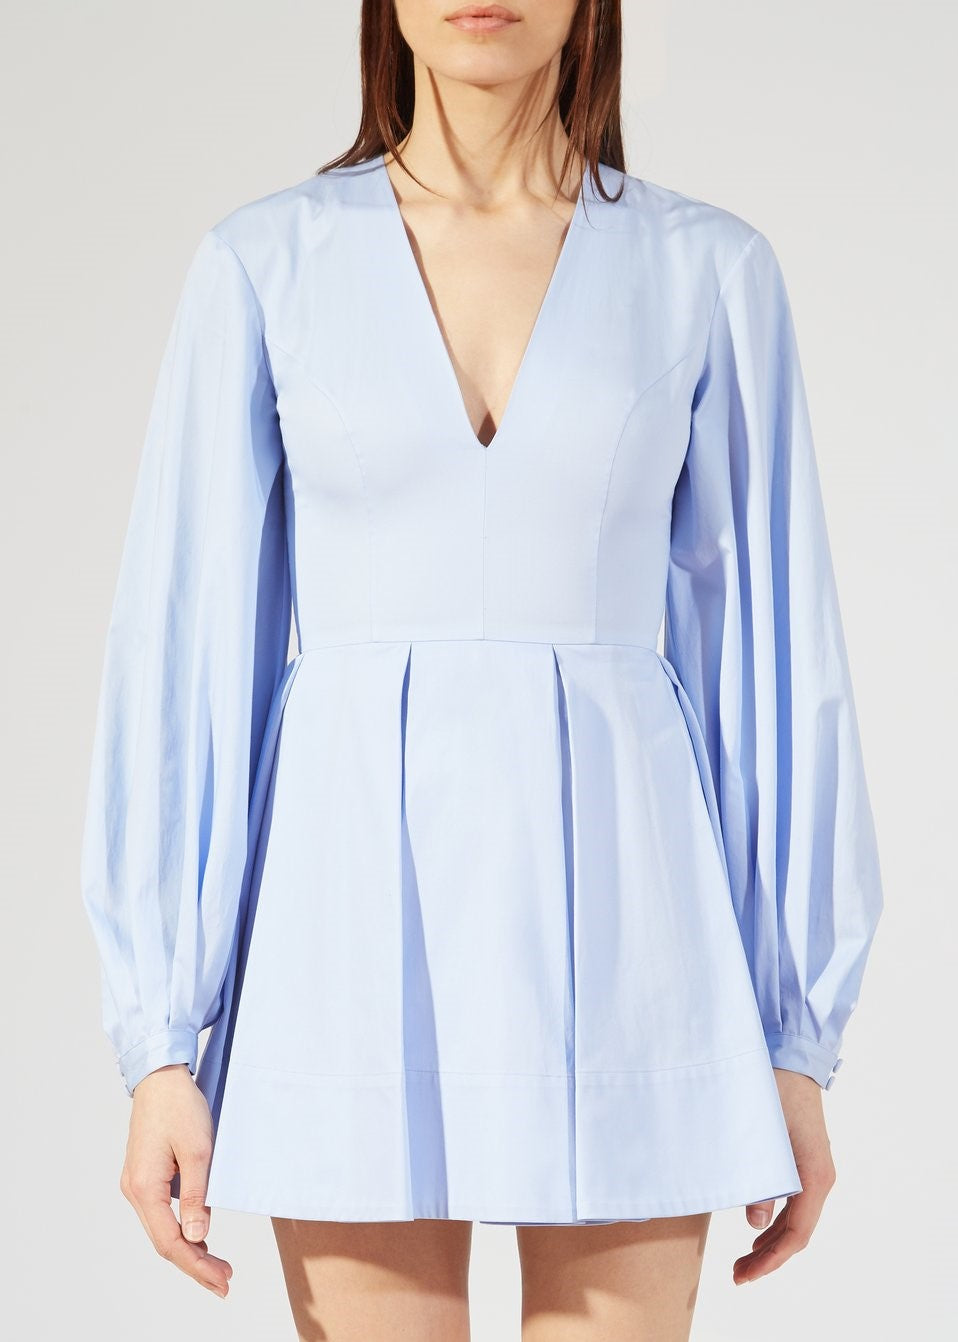 Khaite Denise dress in sky blue